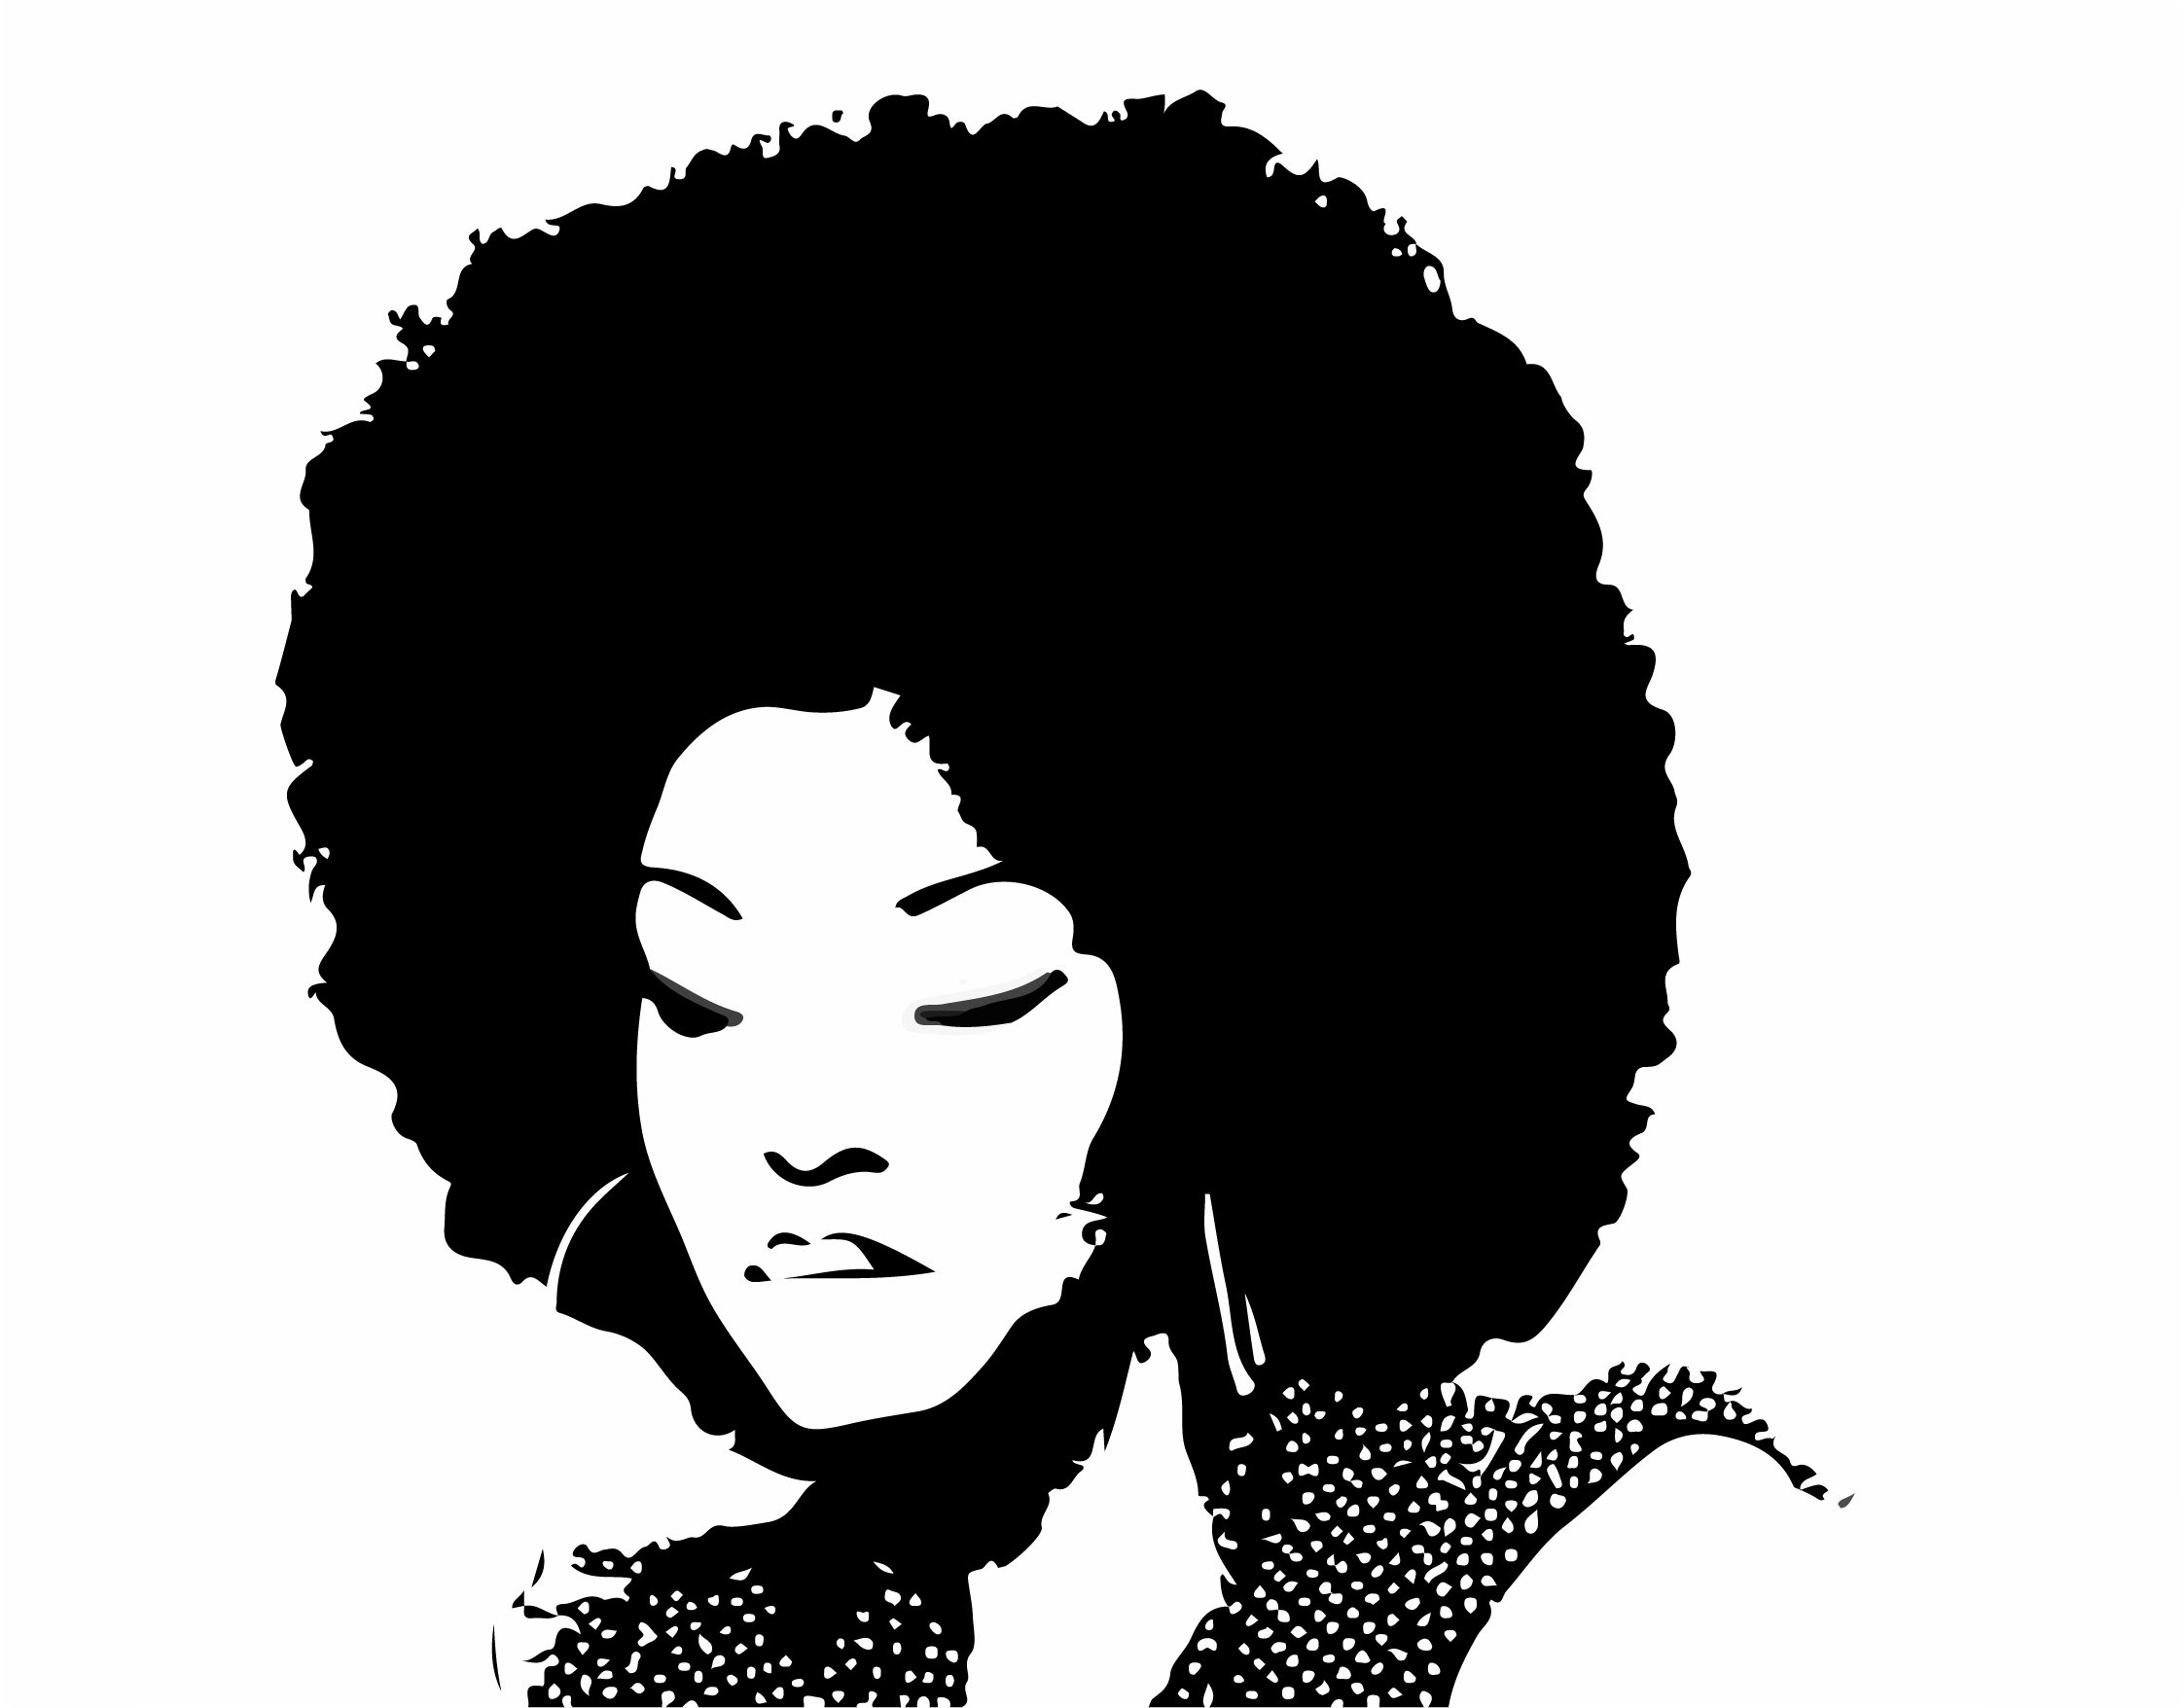 png free stock Clipart lady free for. Transparent afro vector